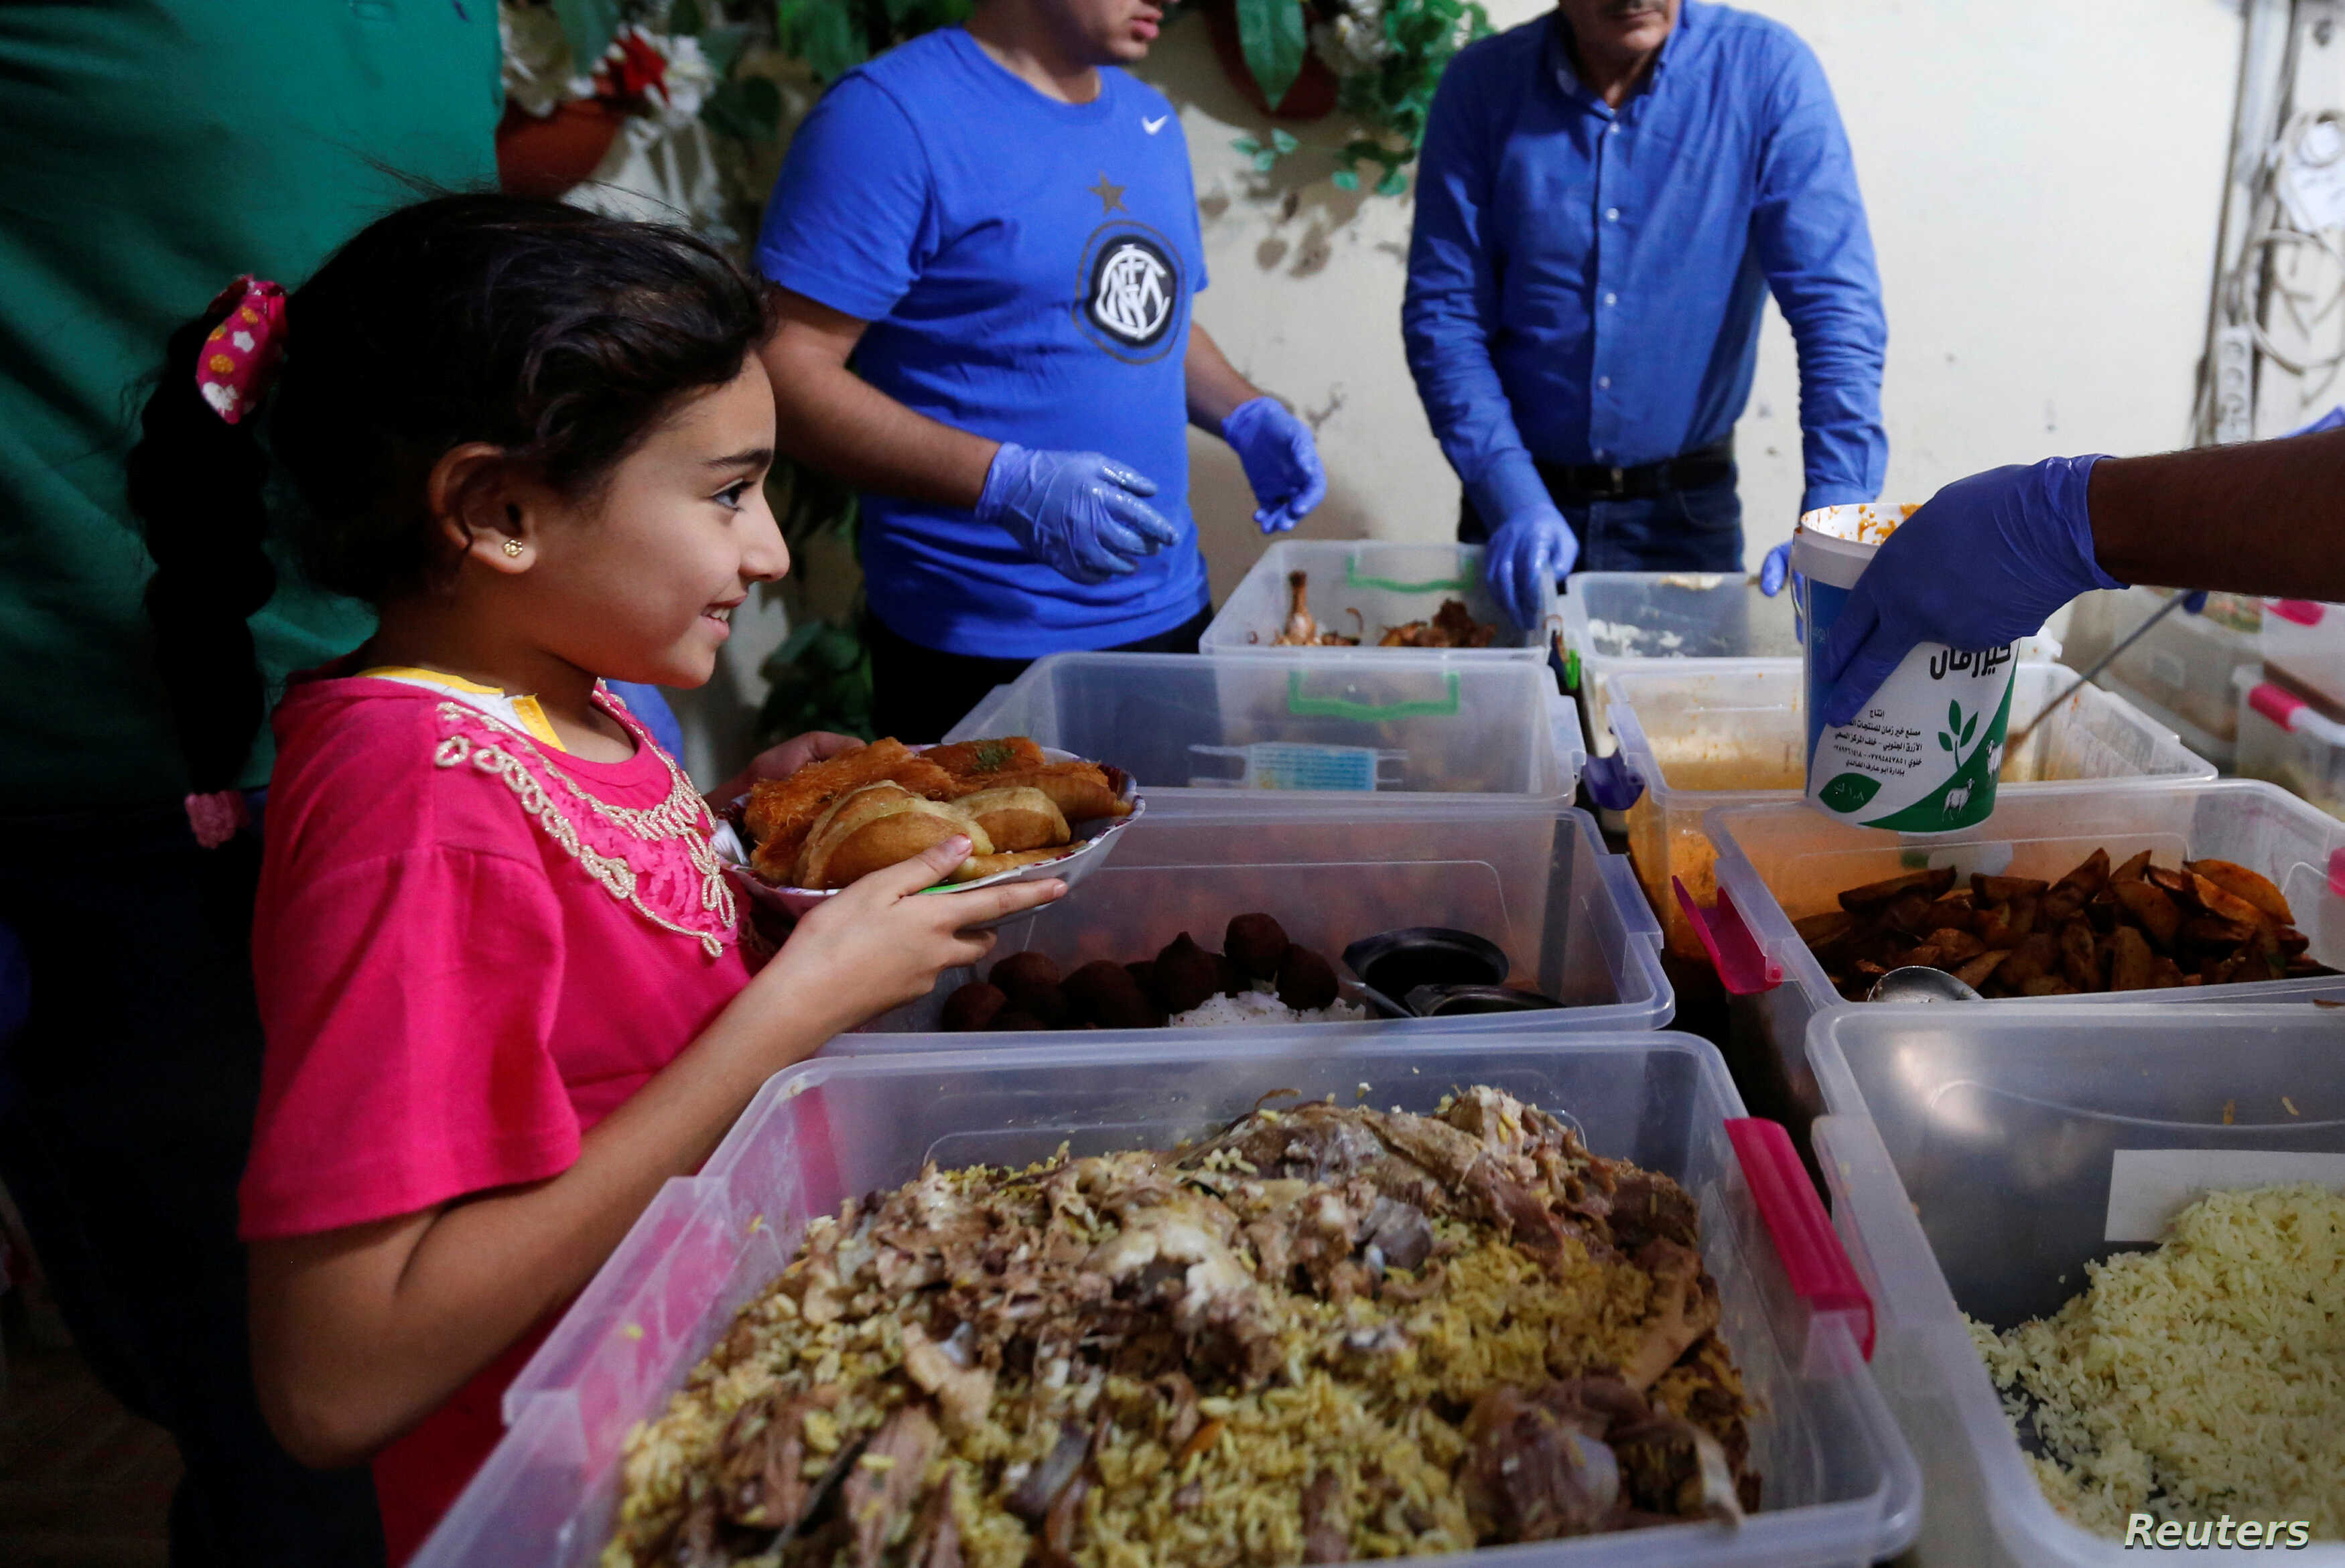 A girl receives a meal provided through the initiative, Family Kitchen, in Al-Baqaa Palestinian refugee camp, near Amman, Jordan, June 11, 2018.